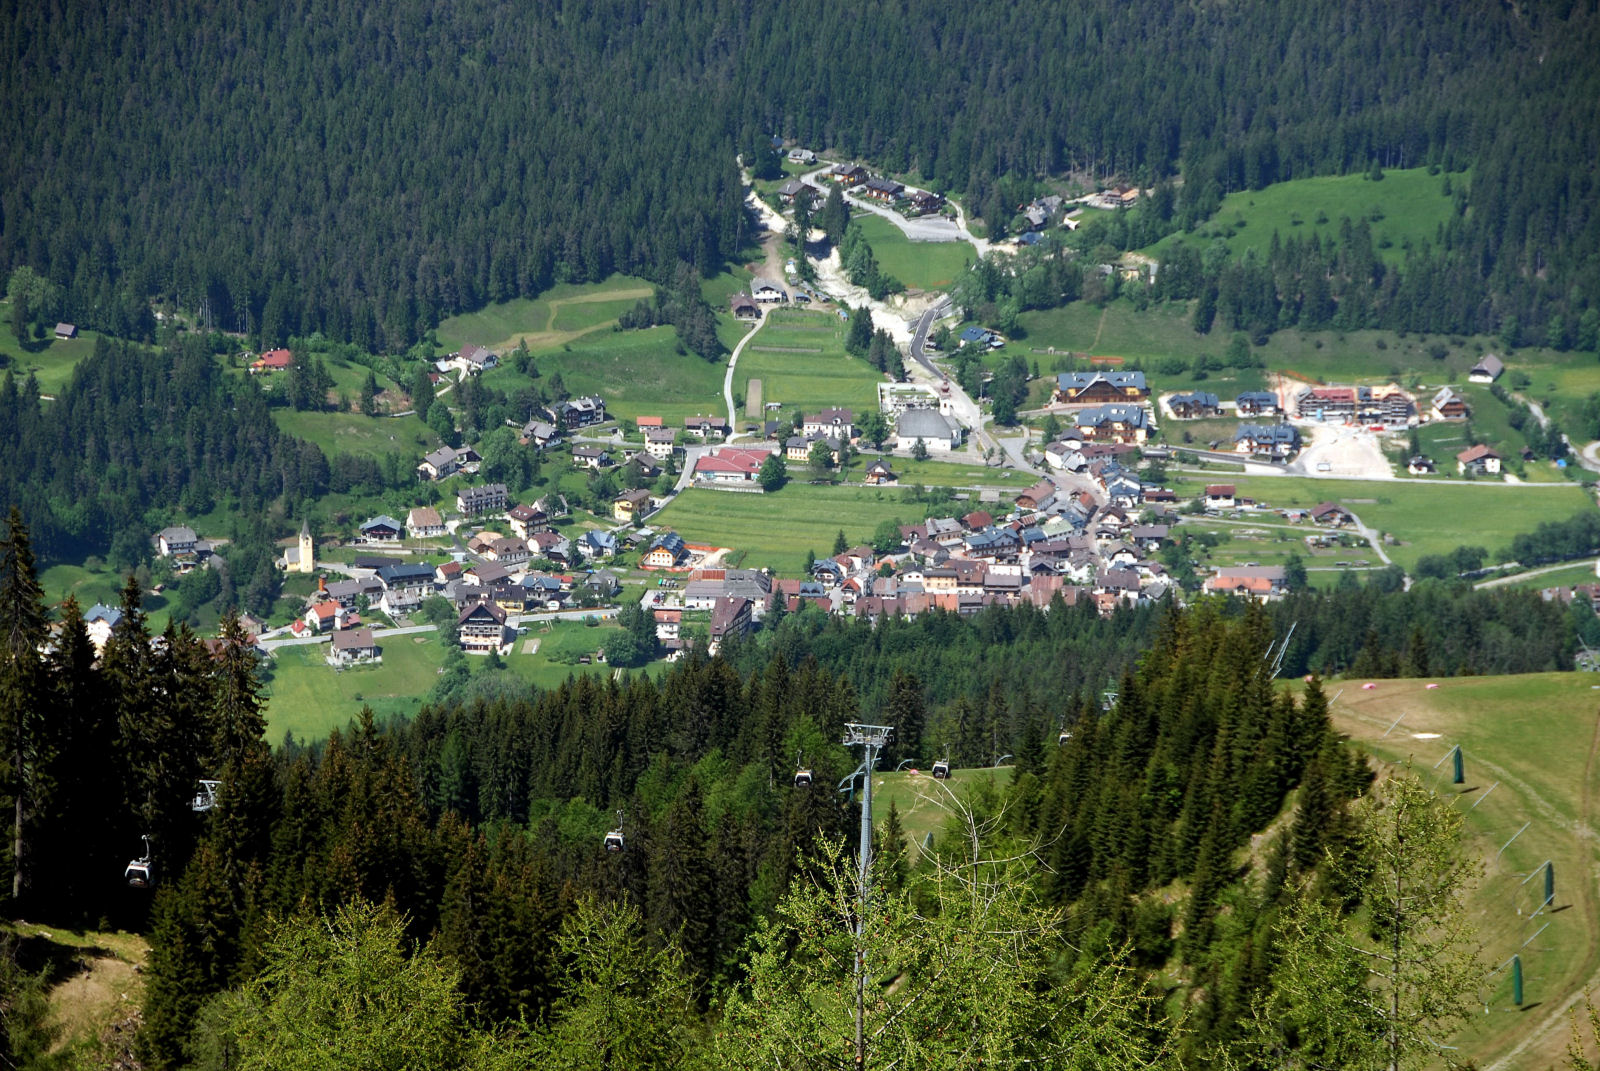 Another view from top of Mount Lussari at the the Camporosso village